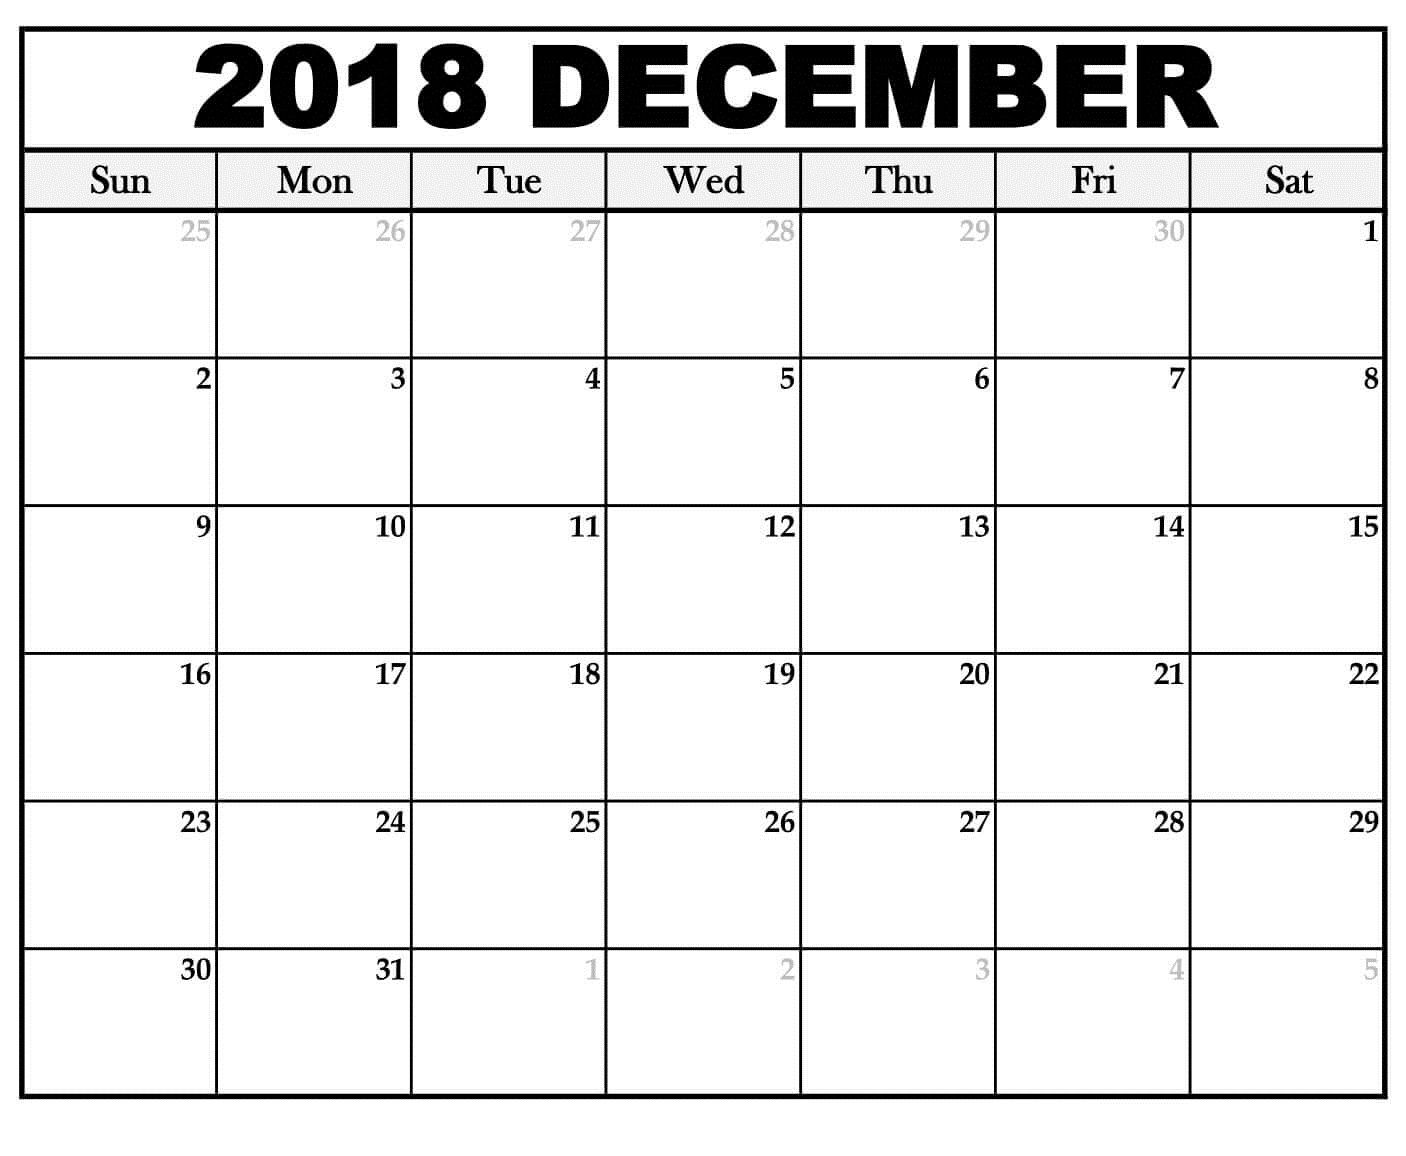 december calendar template - Hizir kaptanband co